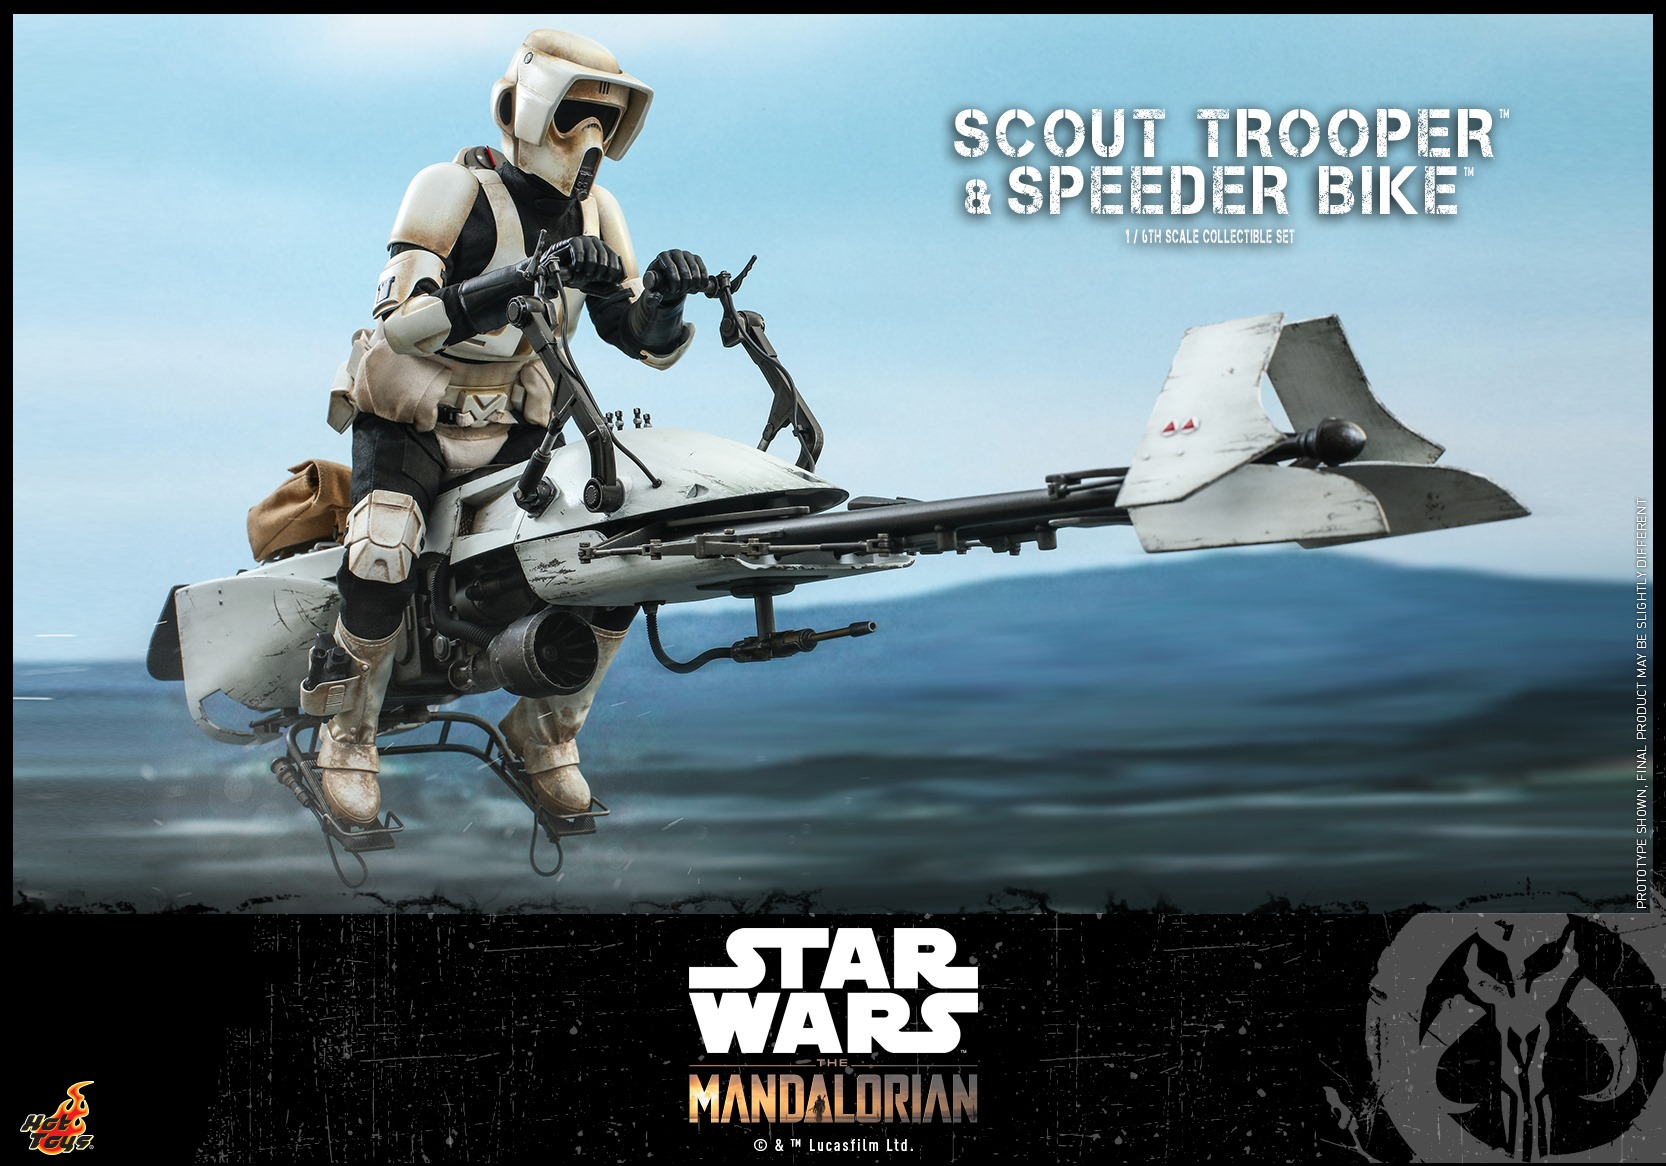 Pre-Order Hot Toys Star Wars Scout Trooper w/Speeder Bike Set